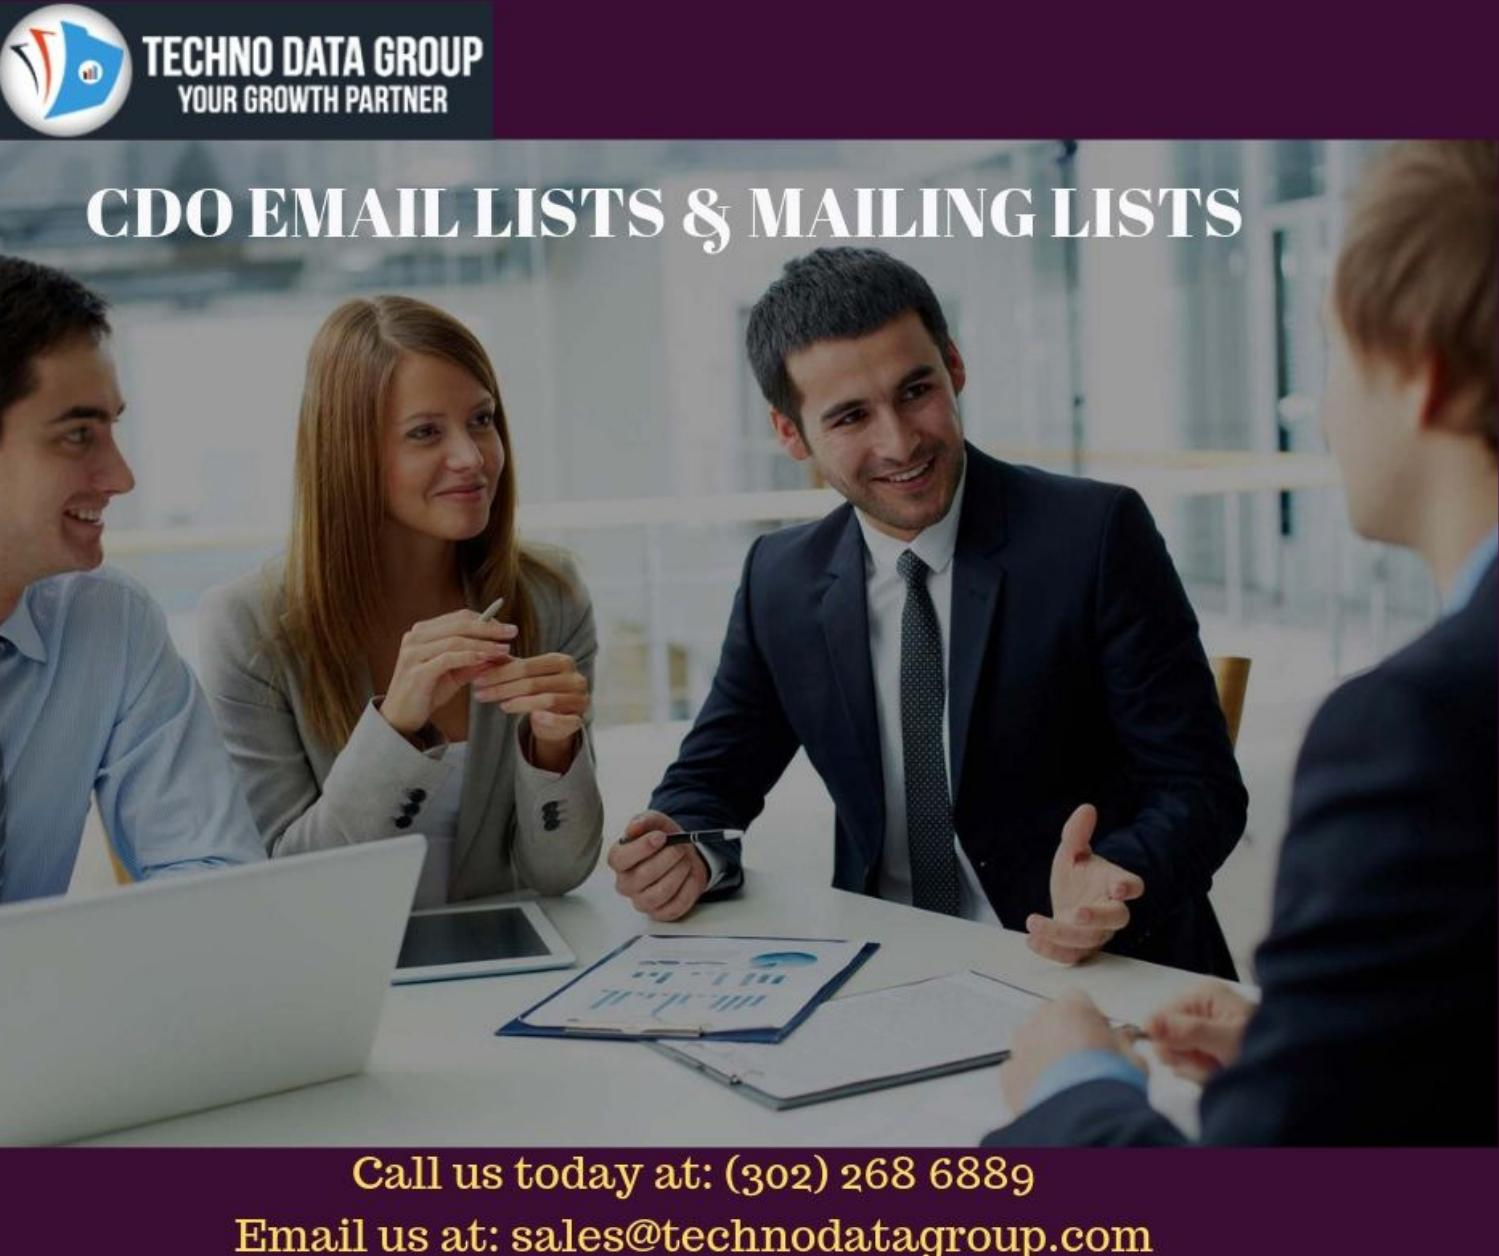 CDO Email Lists & Mailing Lists | Chief Data Officer Email Lists in